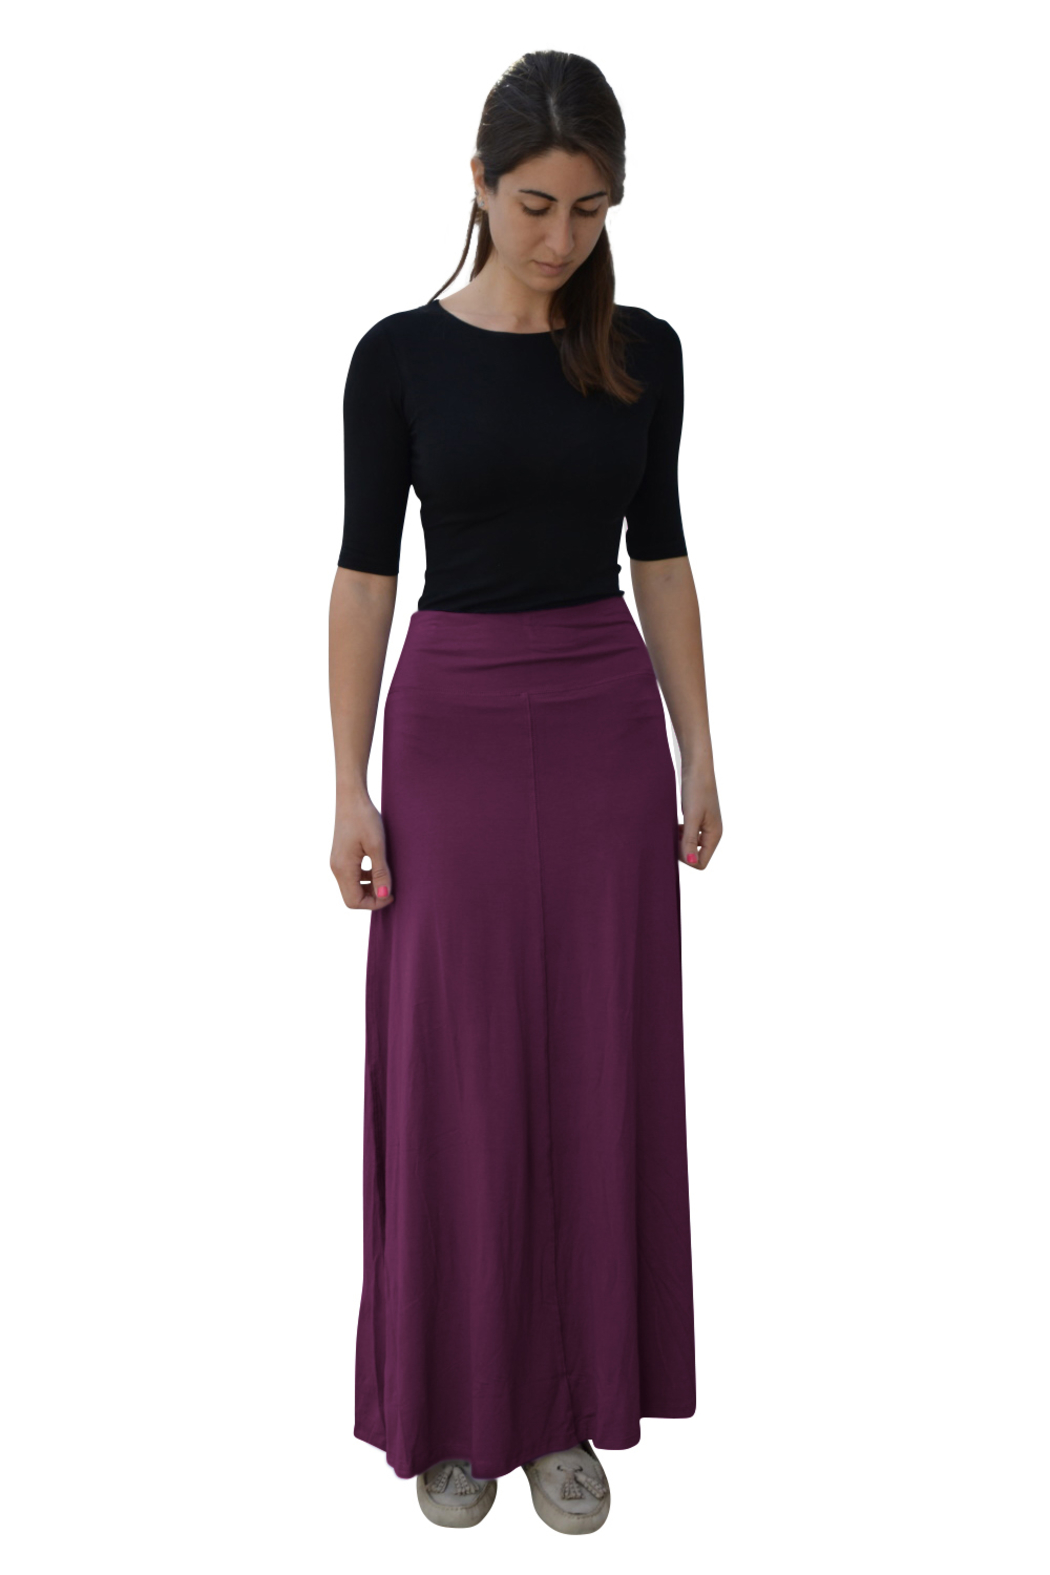 Kosher Casual Maxi Skirt for Women Flowing A-line - Front Cropped Image